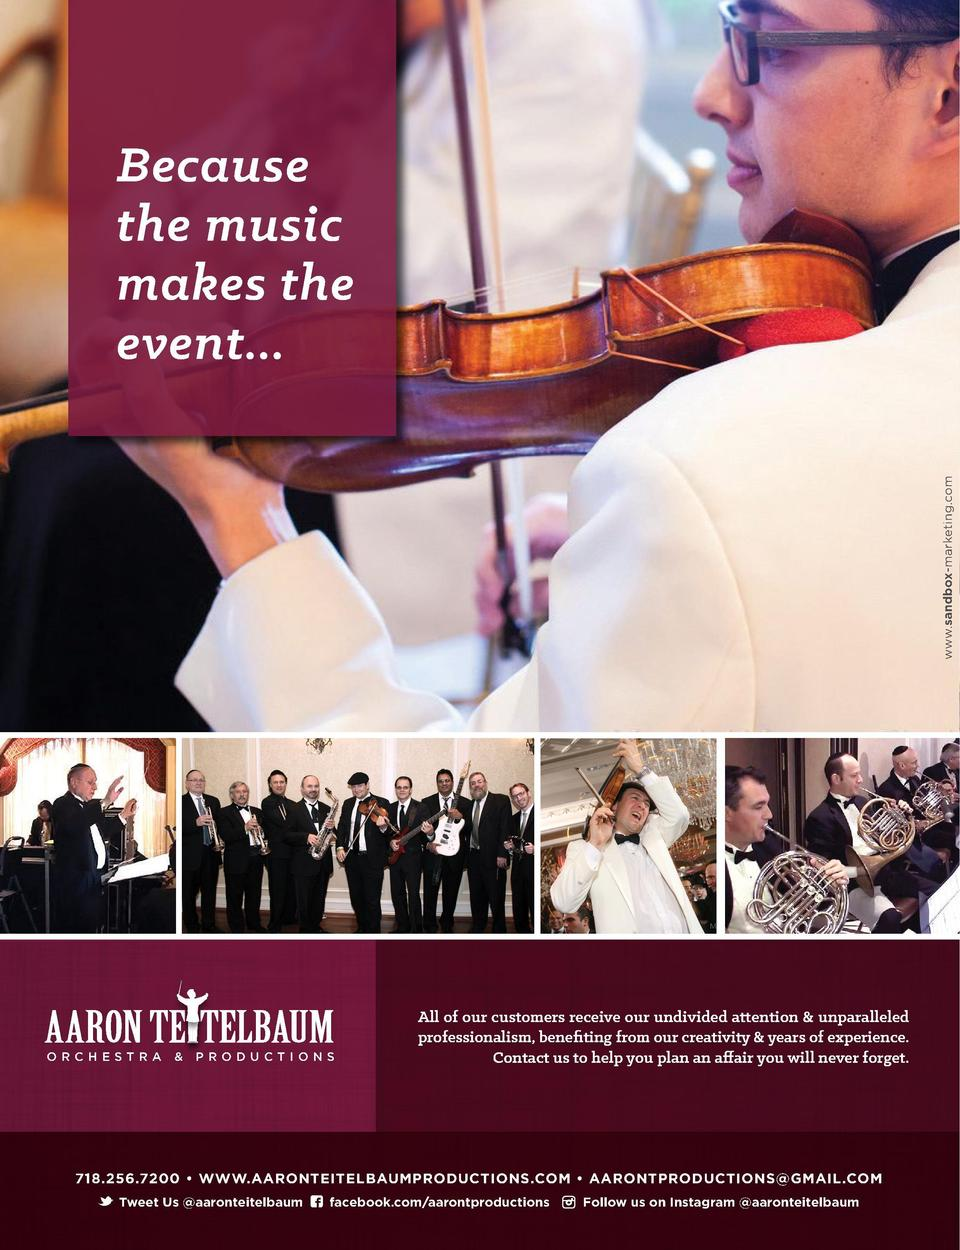 www.sandbox-marketing.com  Because the music makes the event...  Got the Flu   ORCHESTRA     PRODUCTIONS  All of our custo...